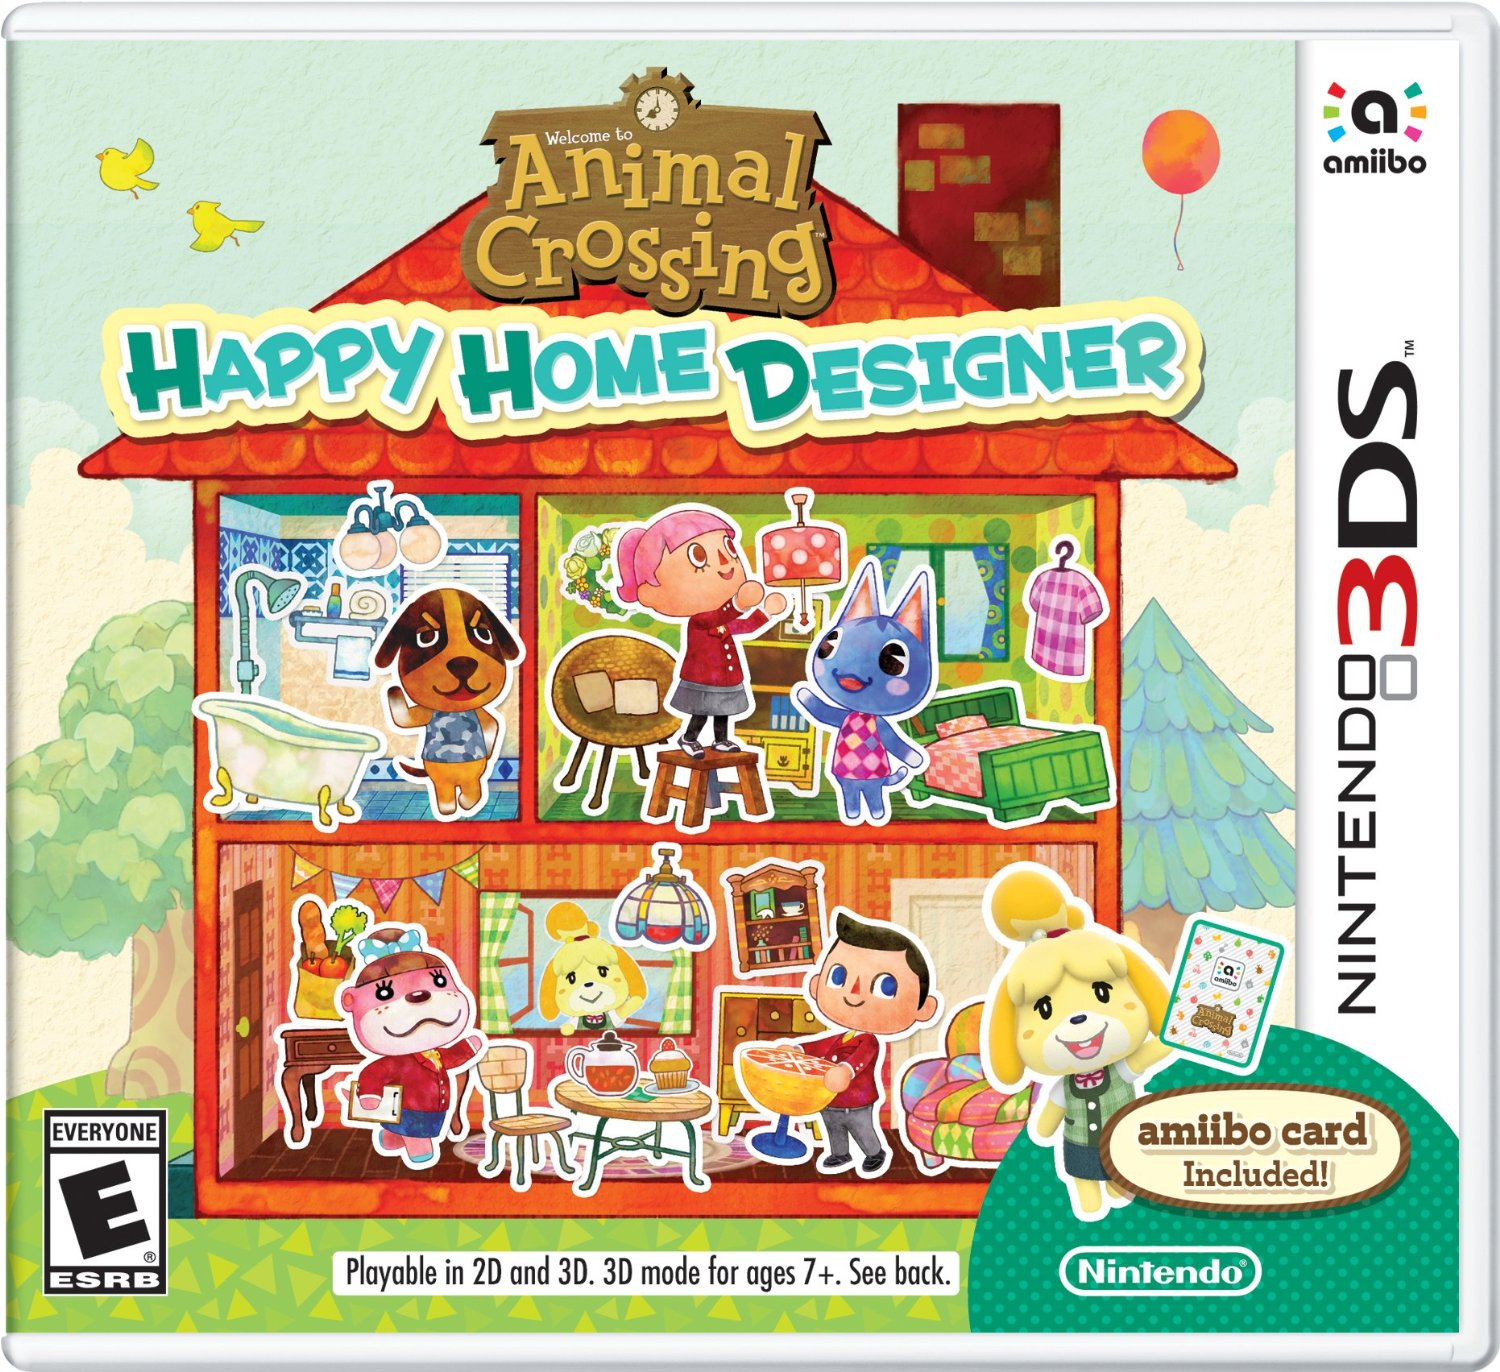 3DS - Animal Crossing: Happy Home Designer US